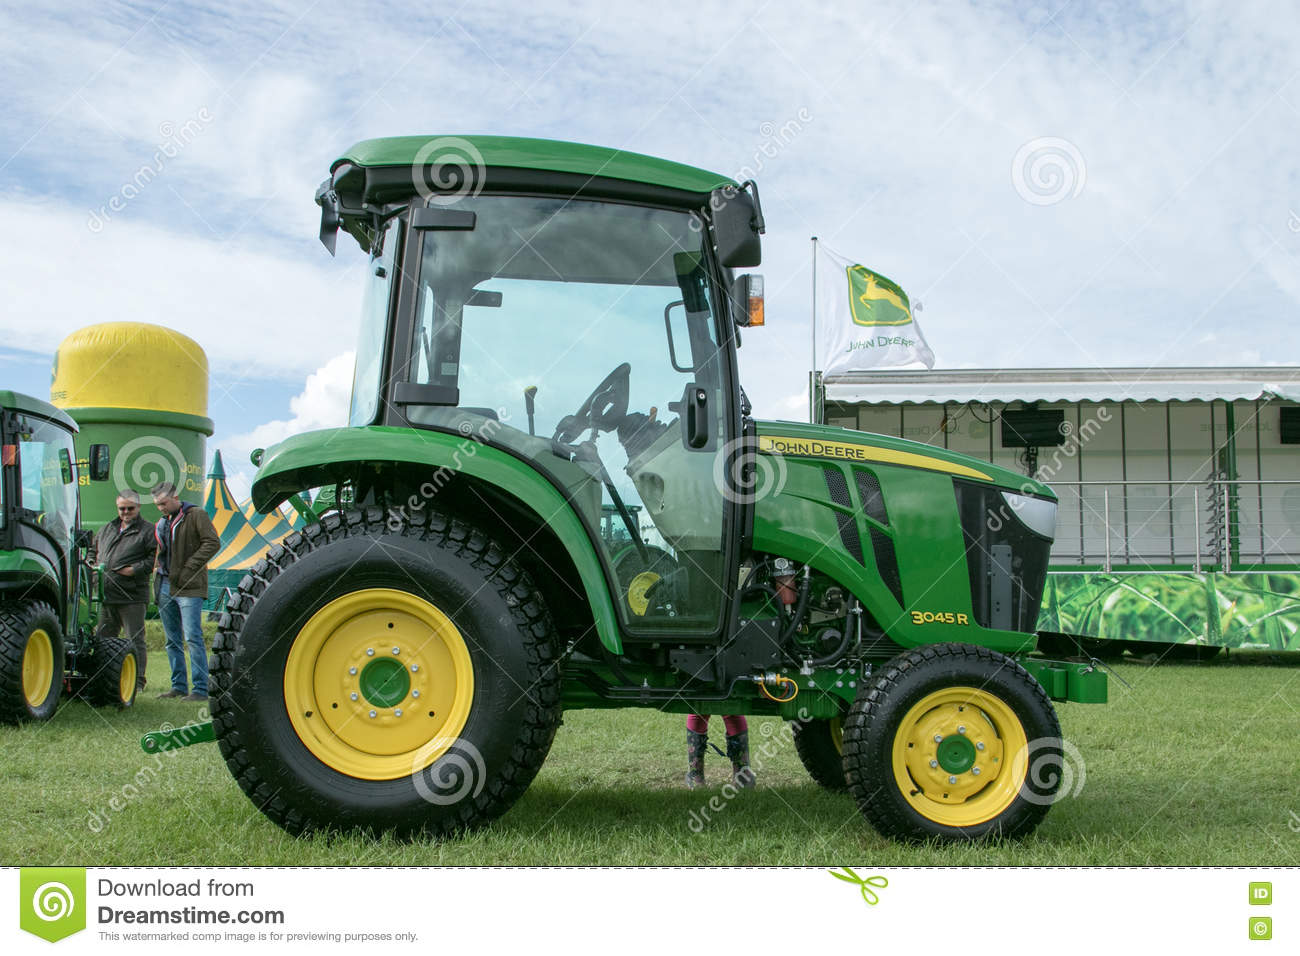 John Deere Tractor Shows : New small john deere r tractor at show editorial photo